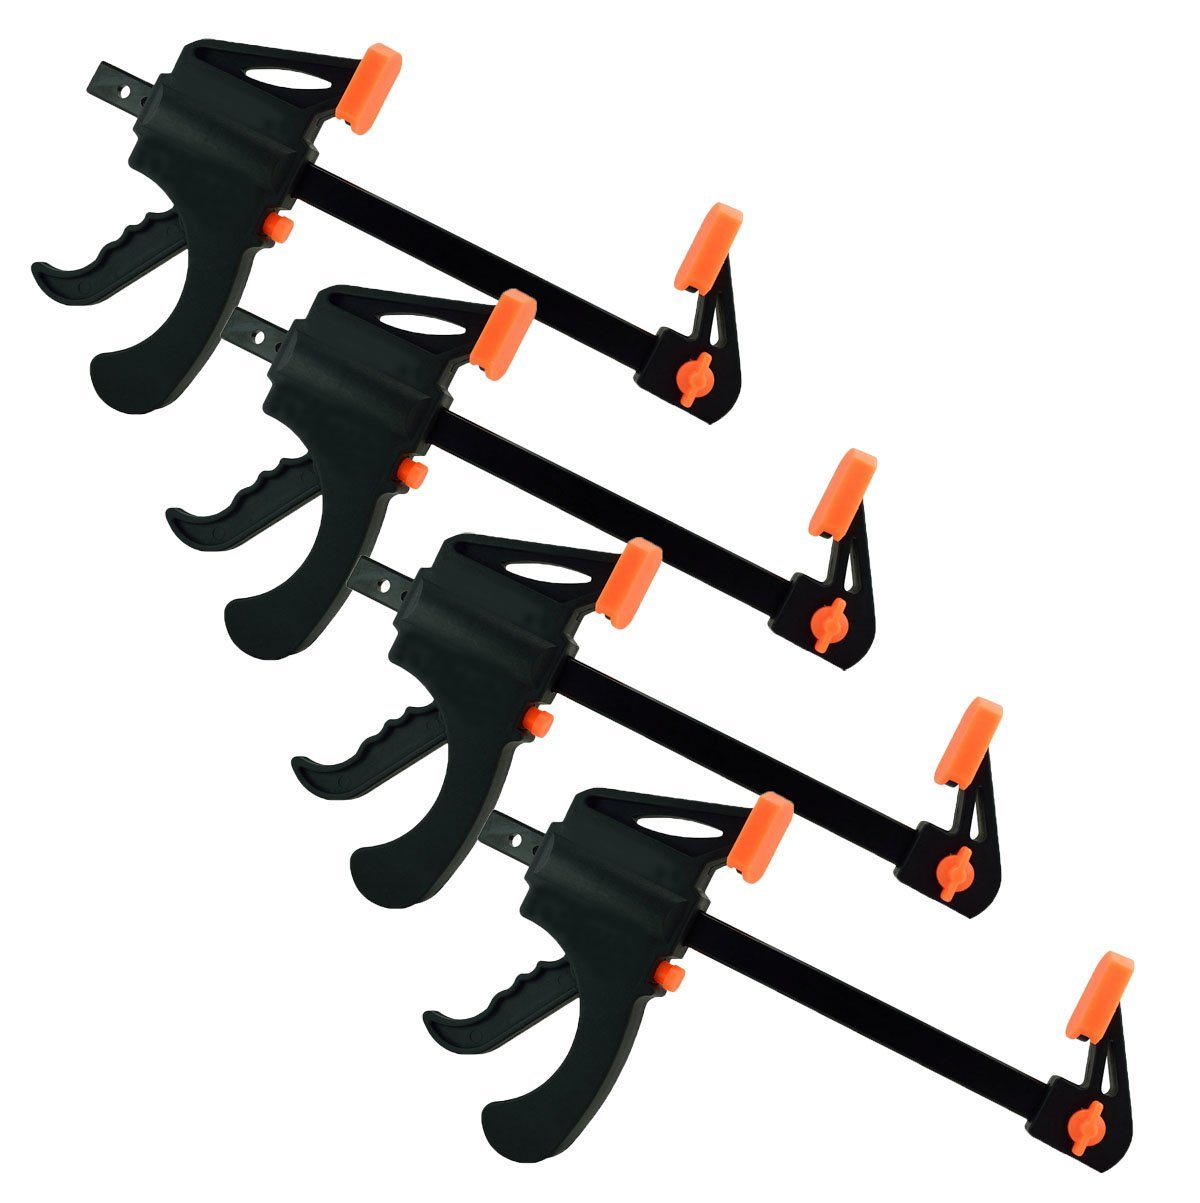 Black Duck Brand Ratchet Bar 6'' Clamp, Converts to 12'' Spreader (4 Pack Ratchet Bar Clamps) by Black Duck Brand